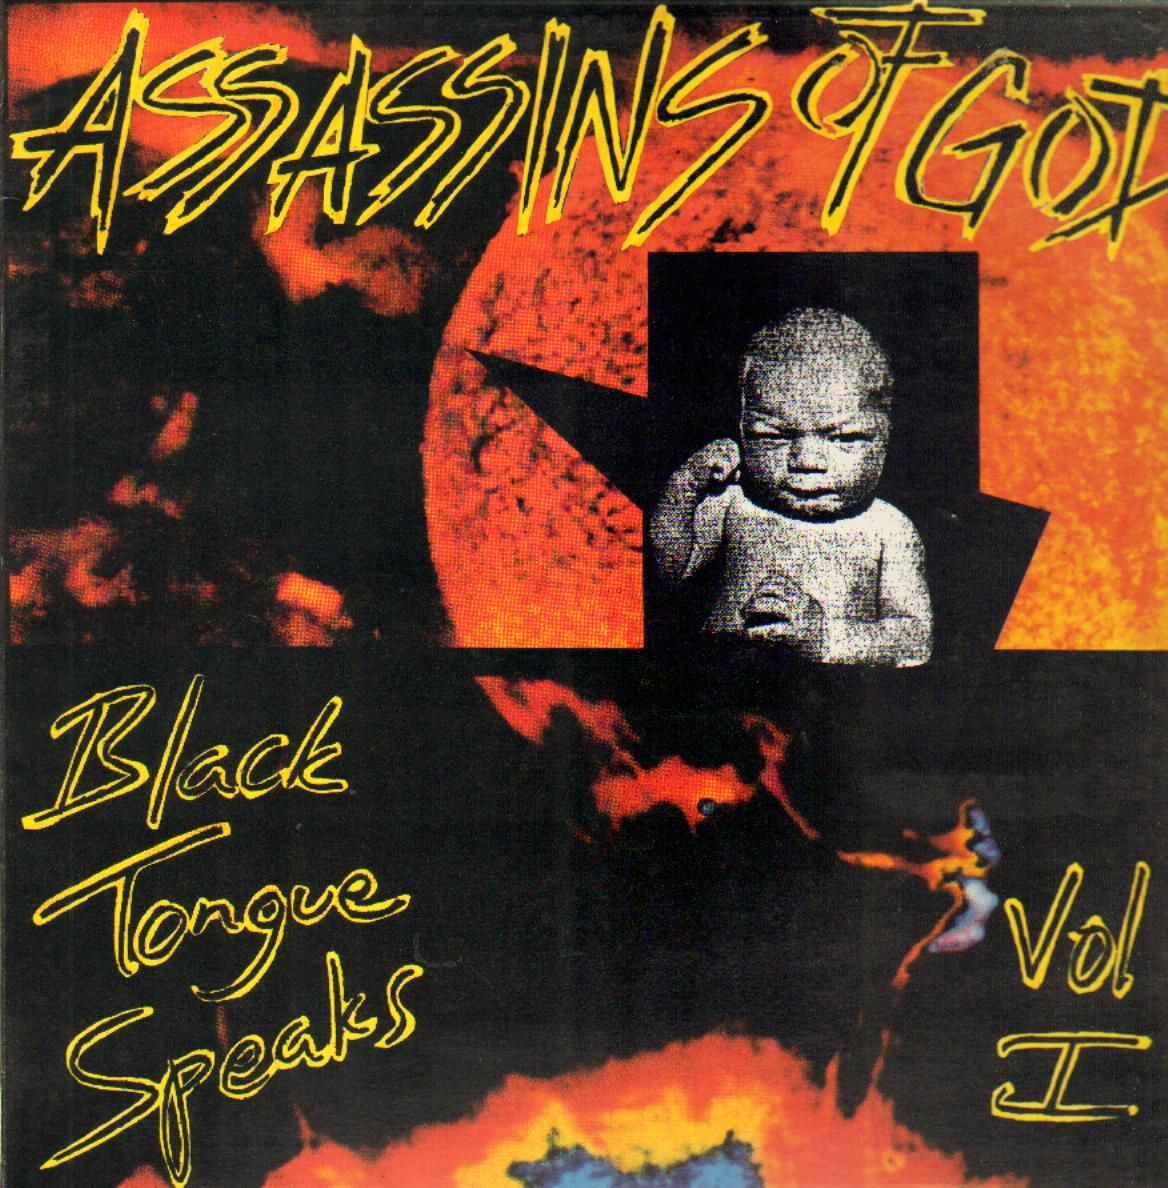 Assassins Of God - Black Tongue Speaks Vol I 1991